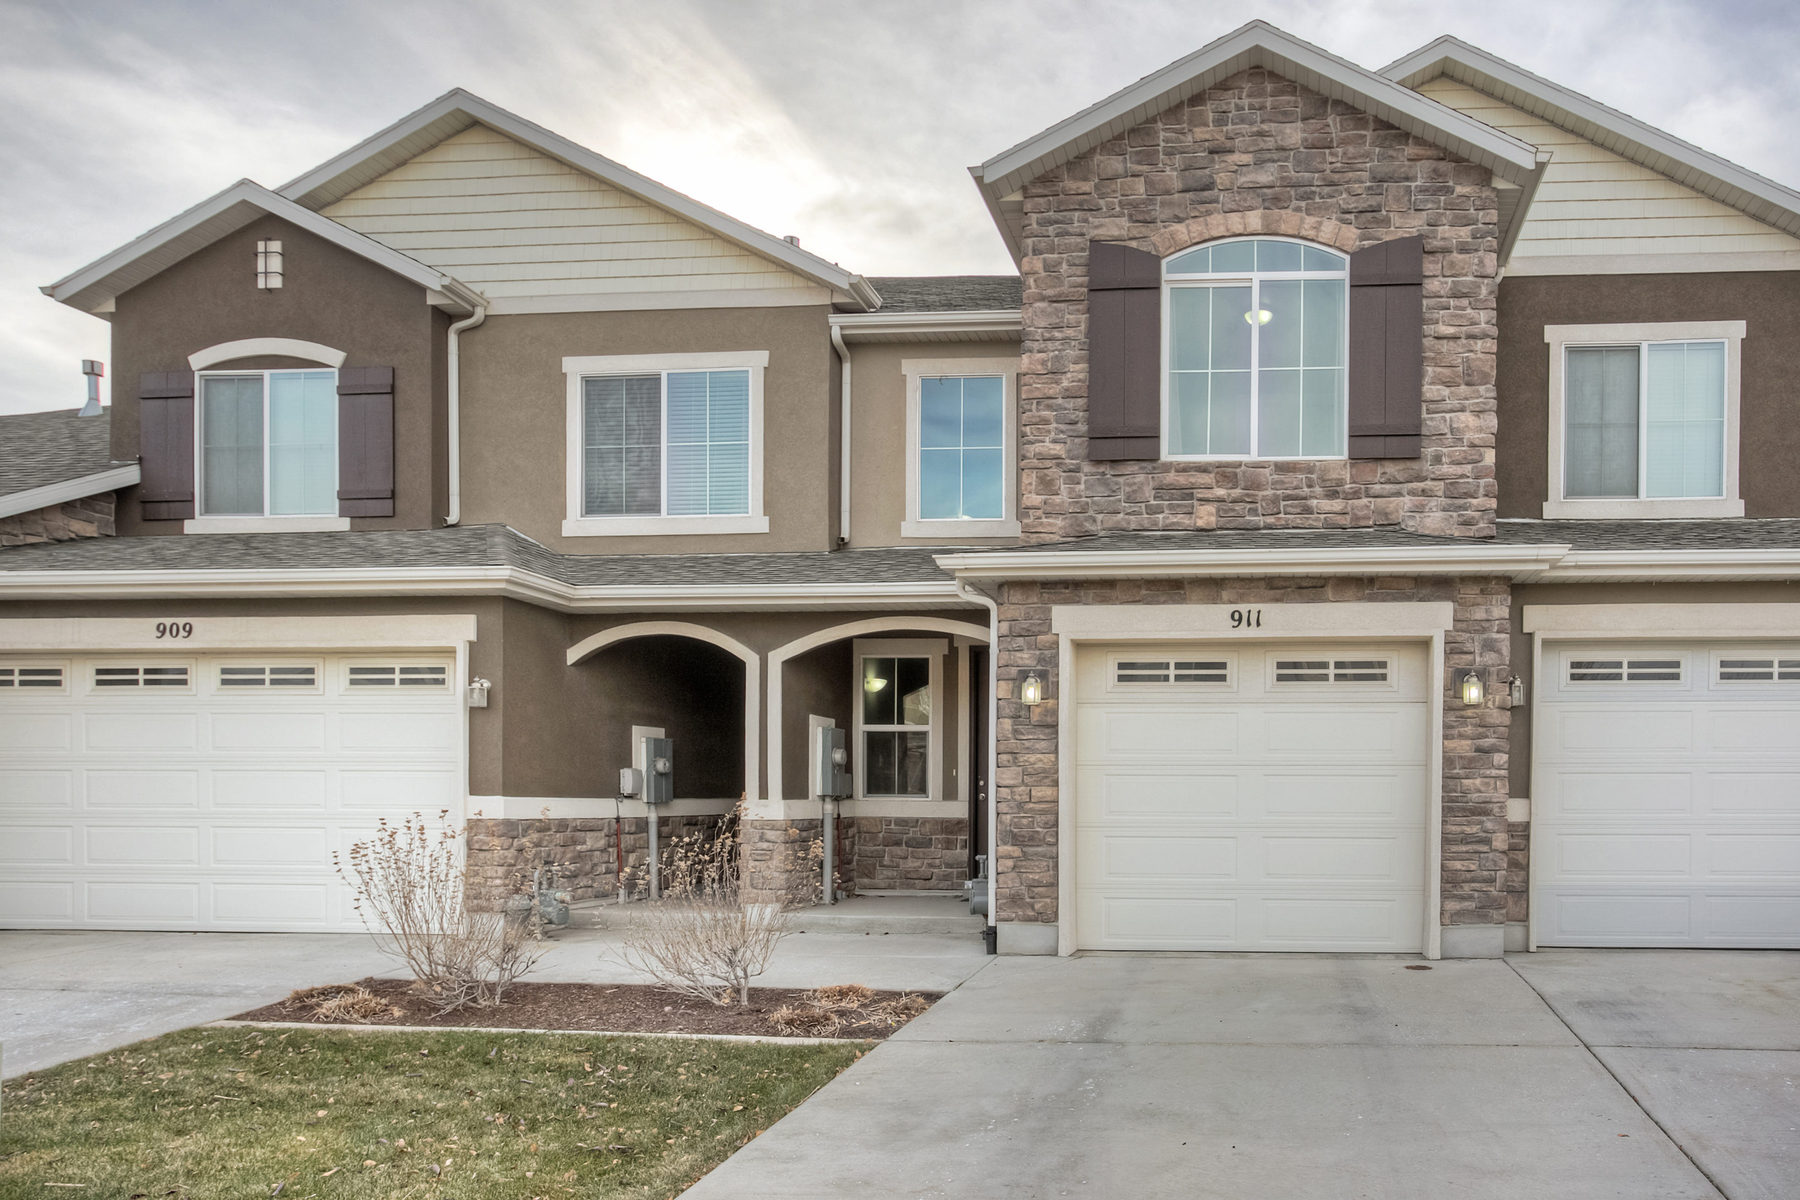 Single Family Home for Sale at Foxy Foxboro Townhouse 911 W Berkeley Dr Salt Lake City, Utah 84054 United States